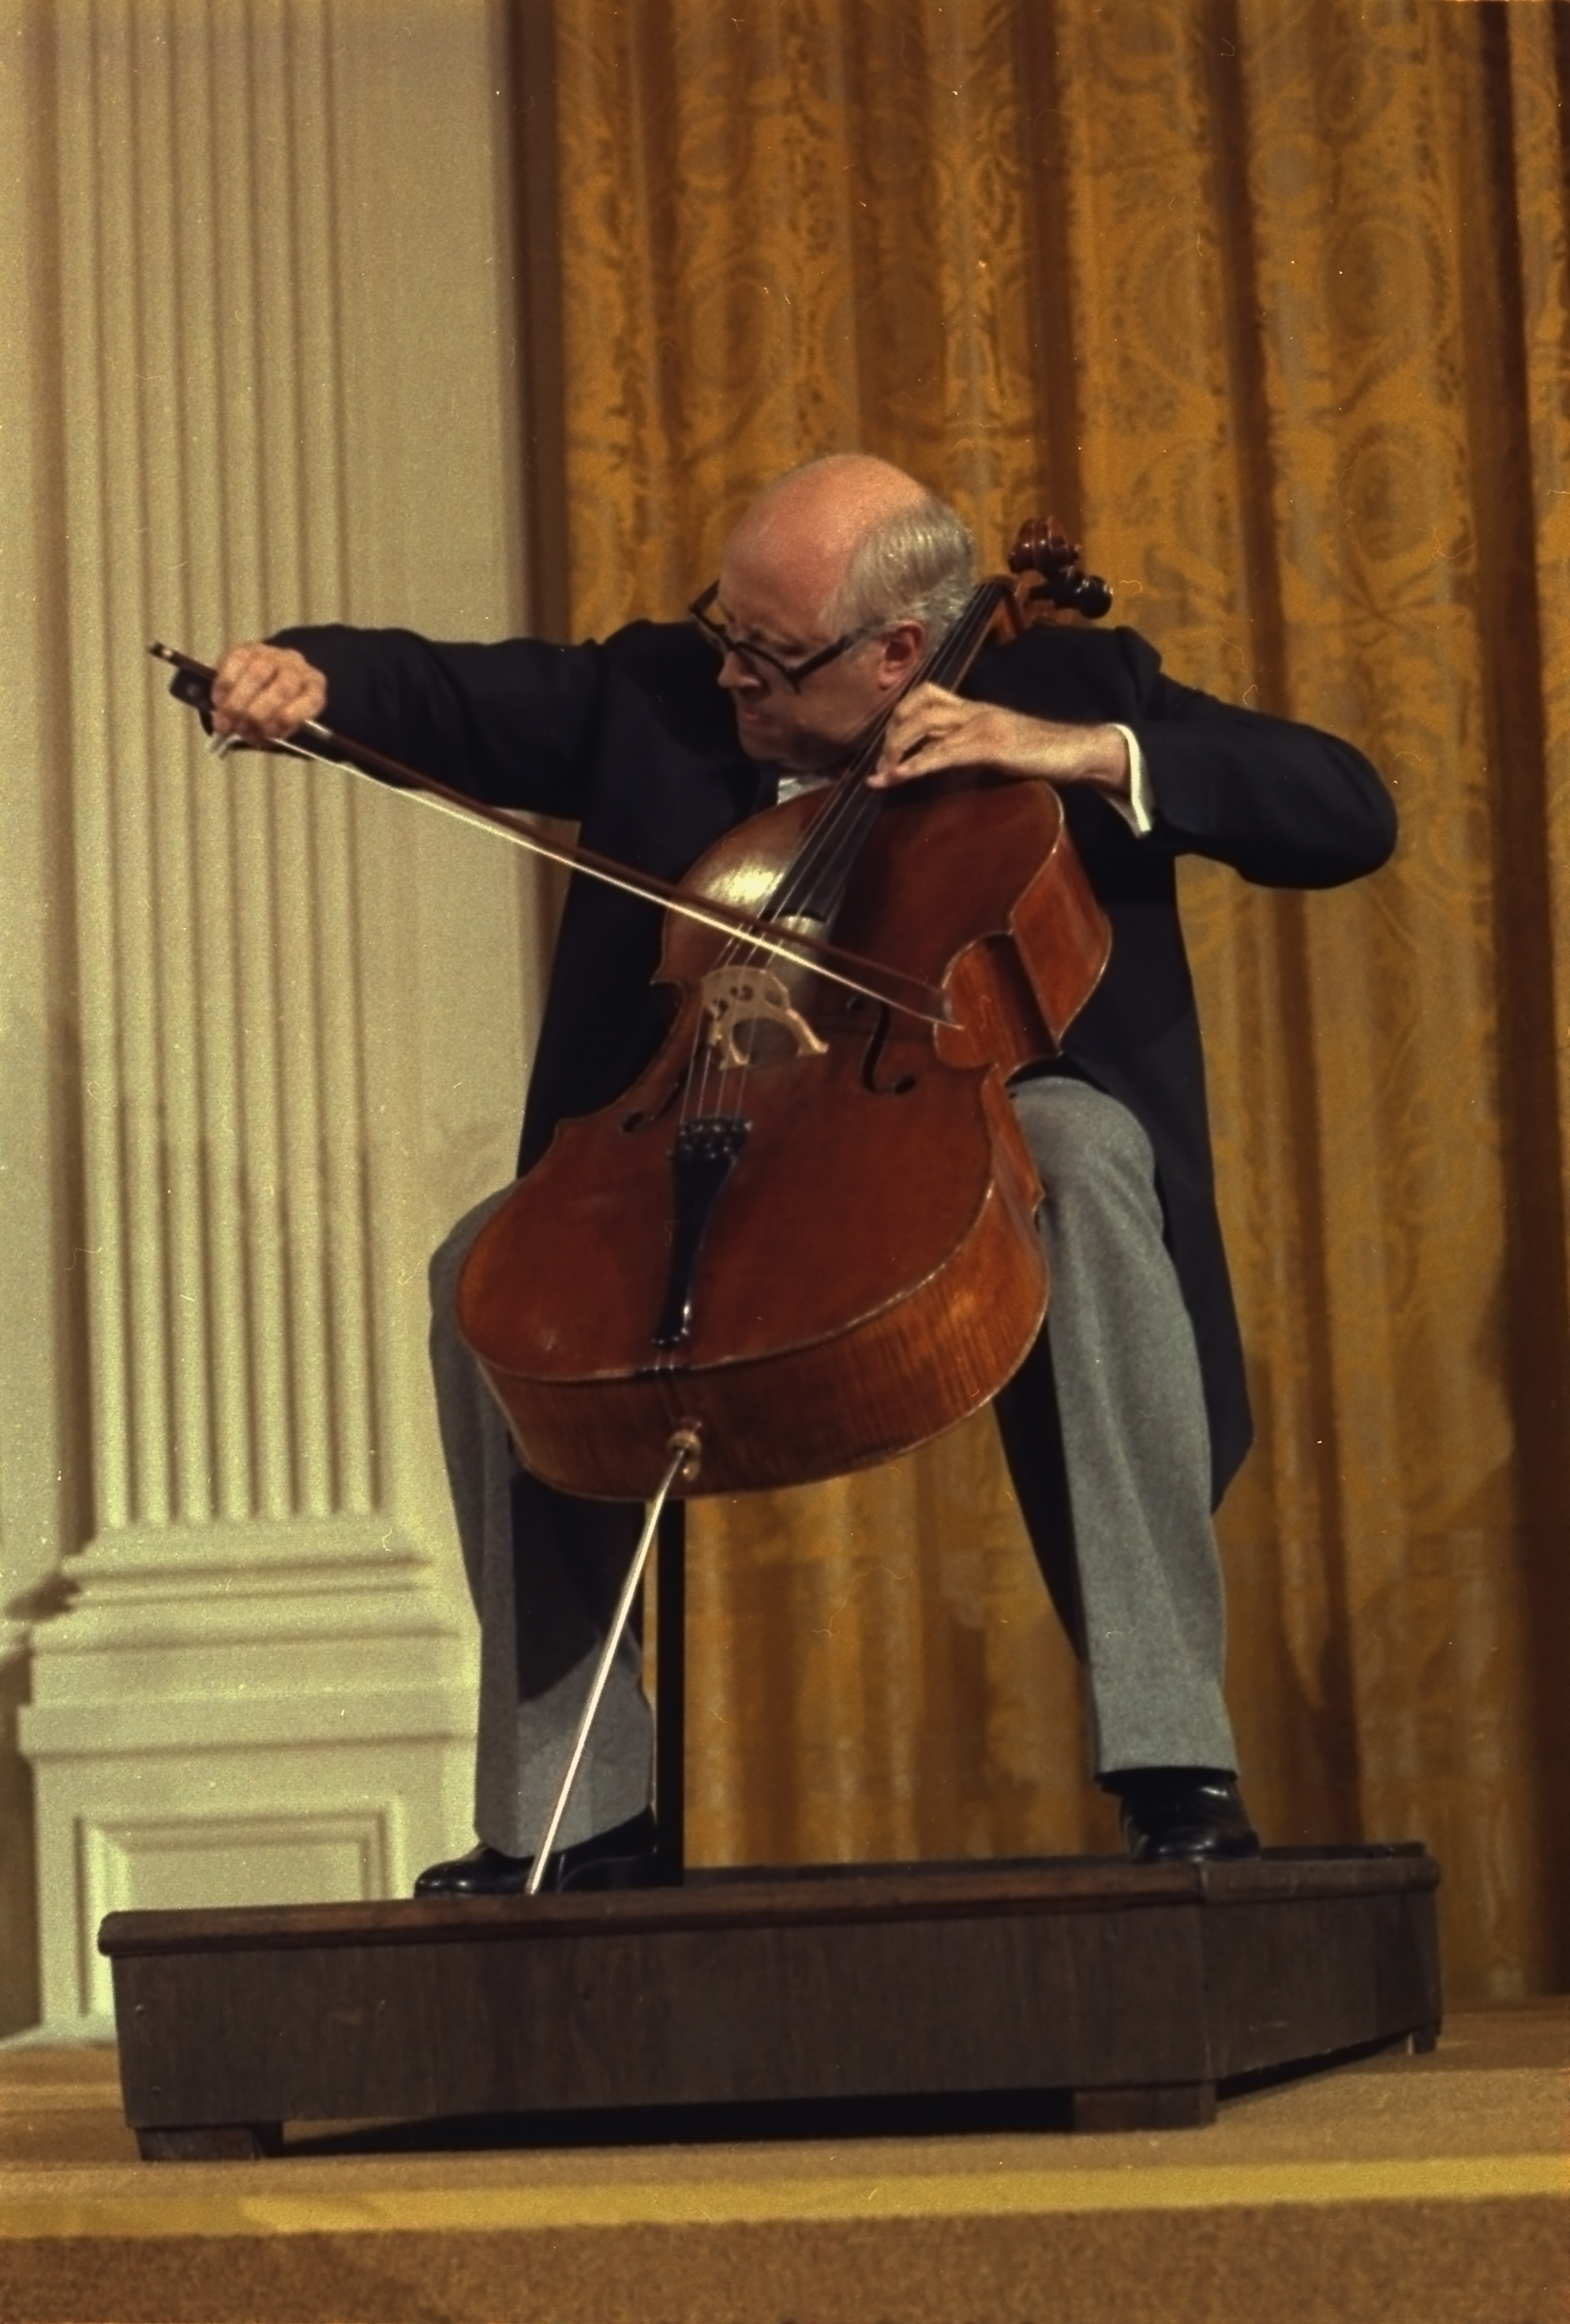 Cellist Mstislav Rostropovich, performing at the White House on September 17, 1978.